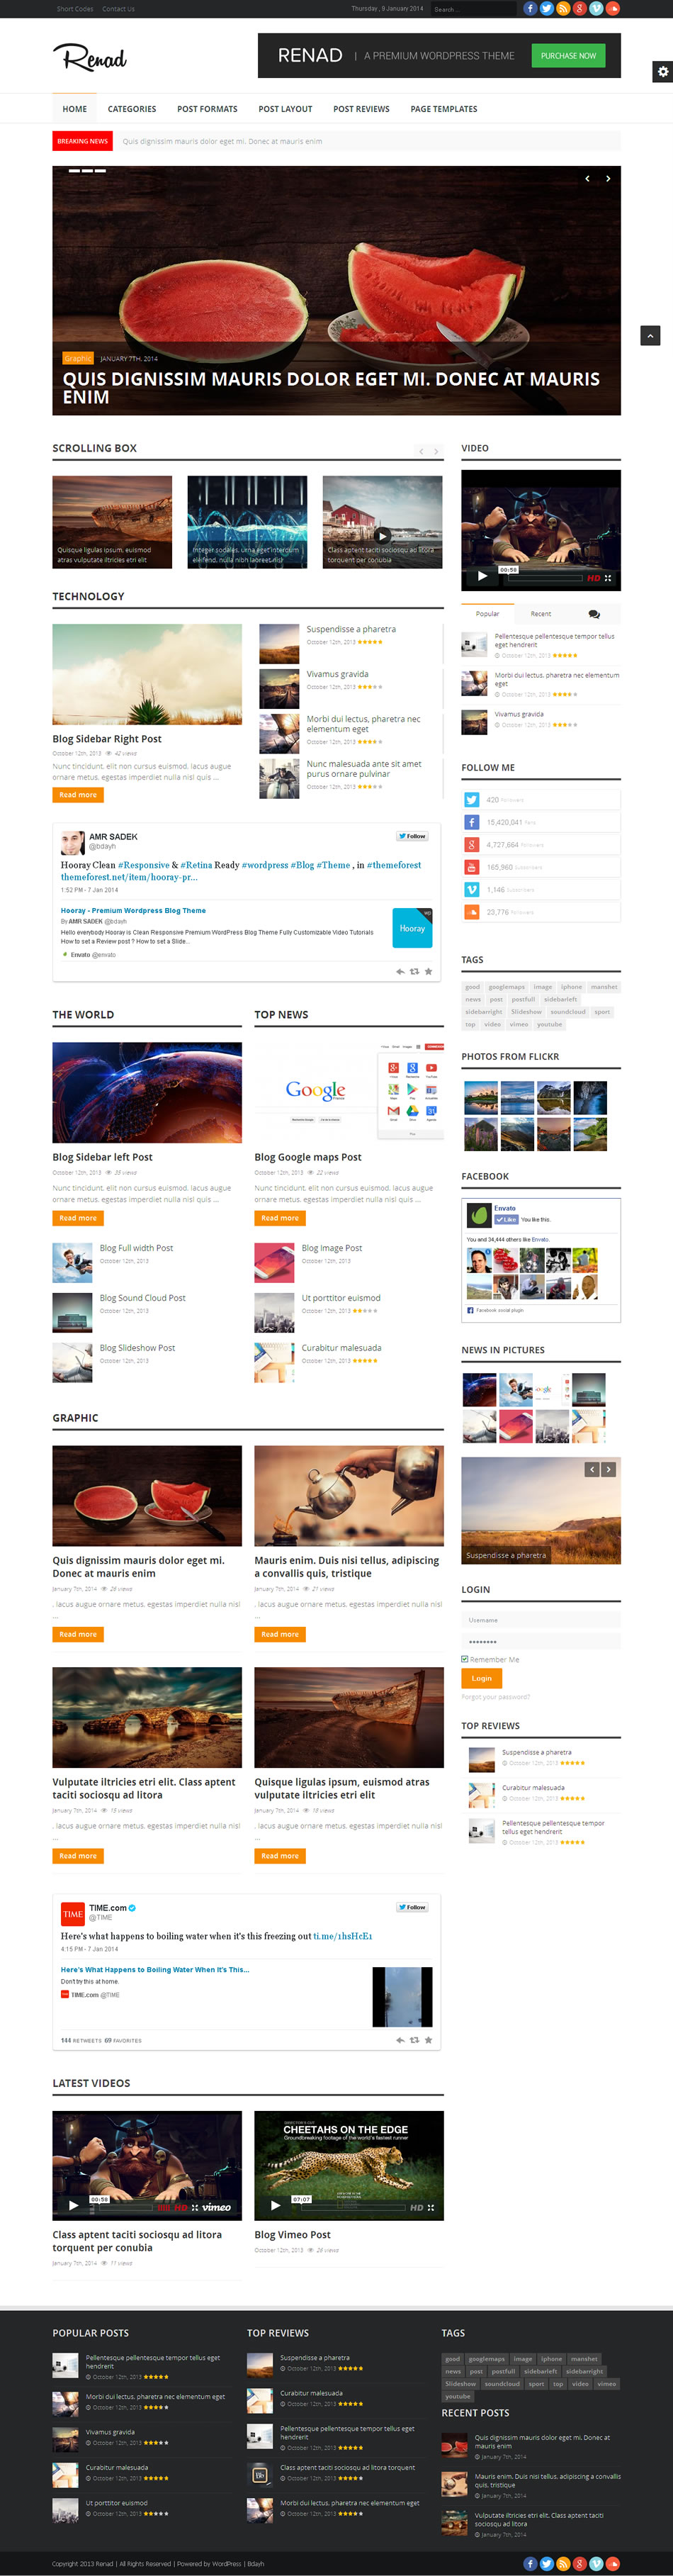 renad wordpress theme